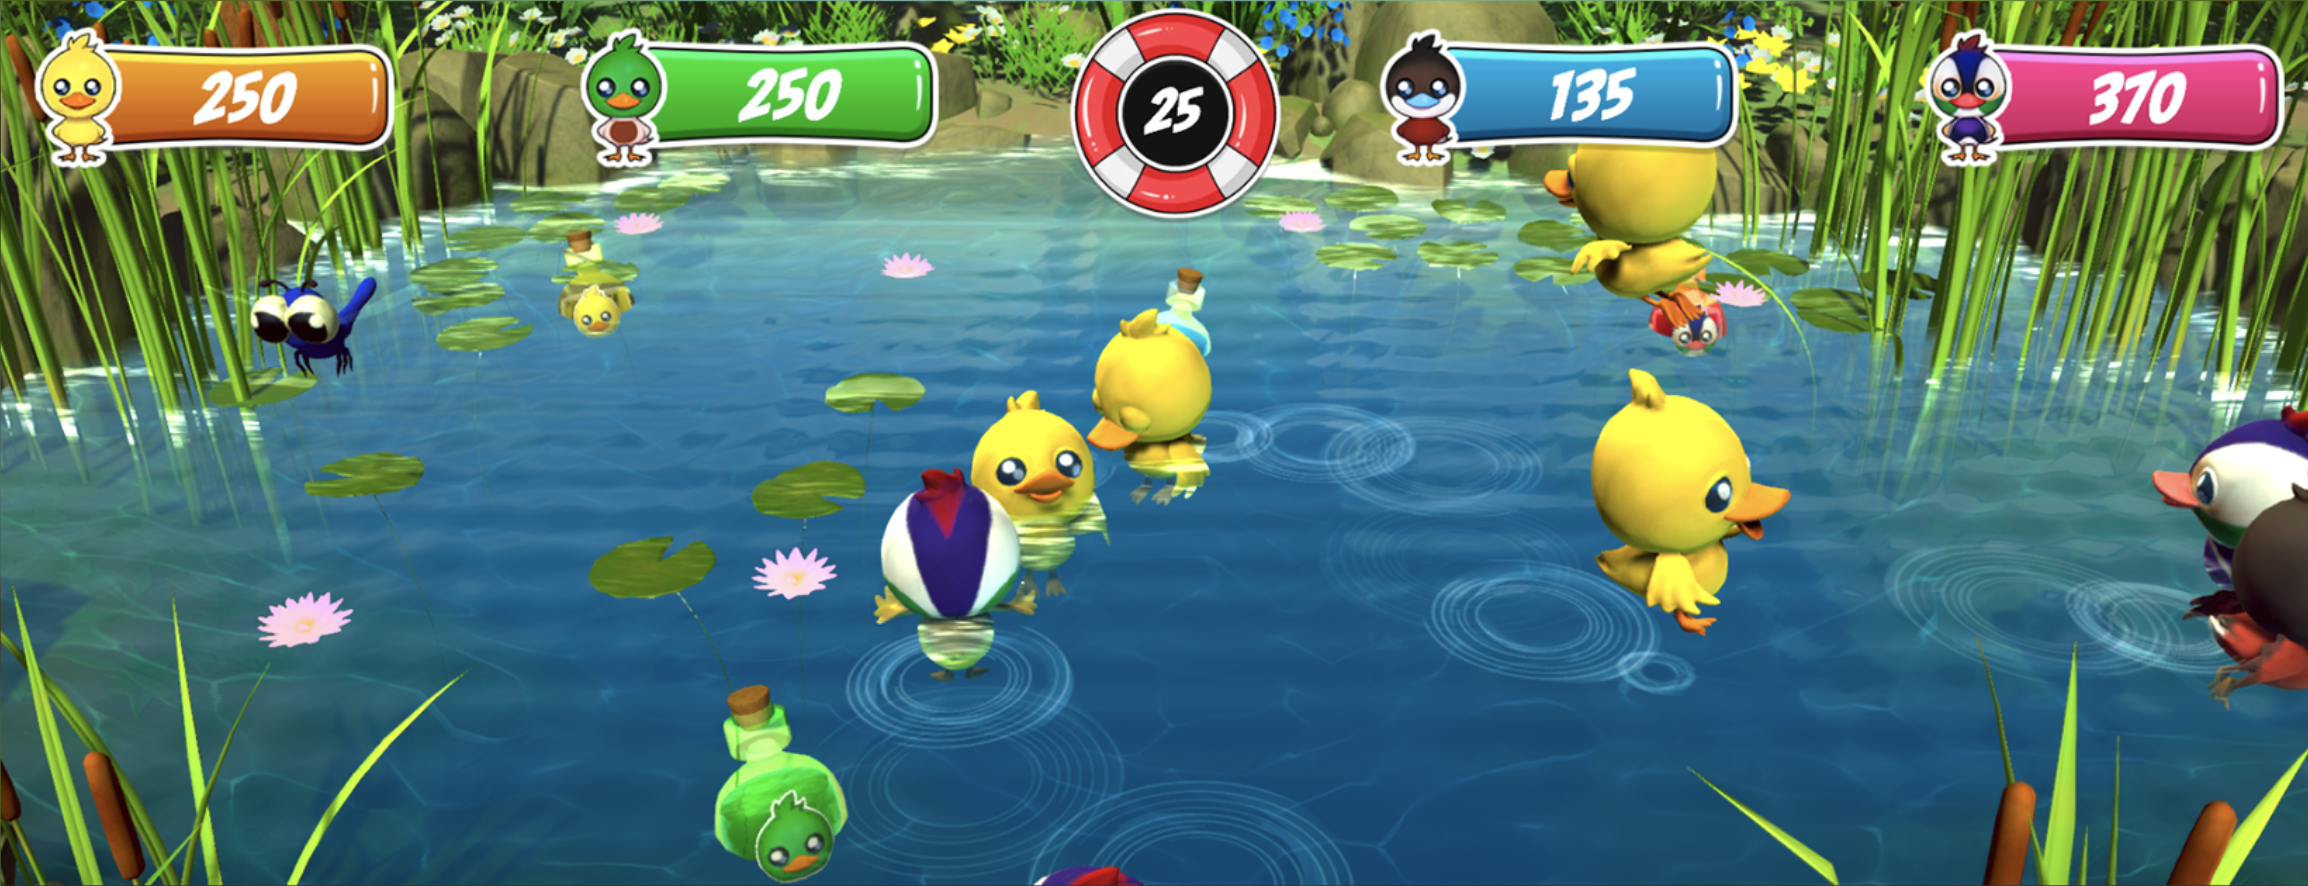 Picture Duck Panic! gameplay picture